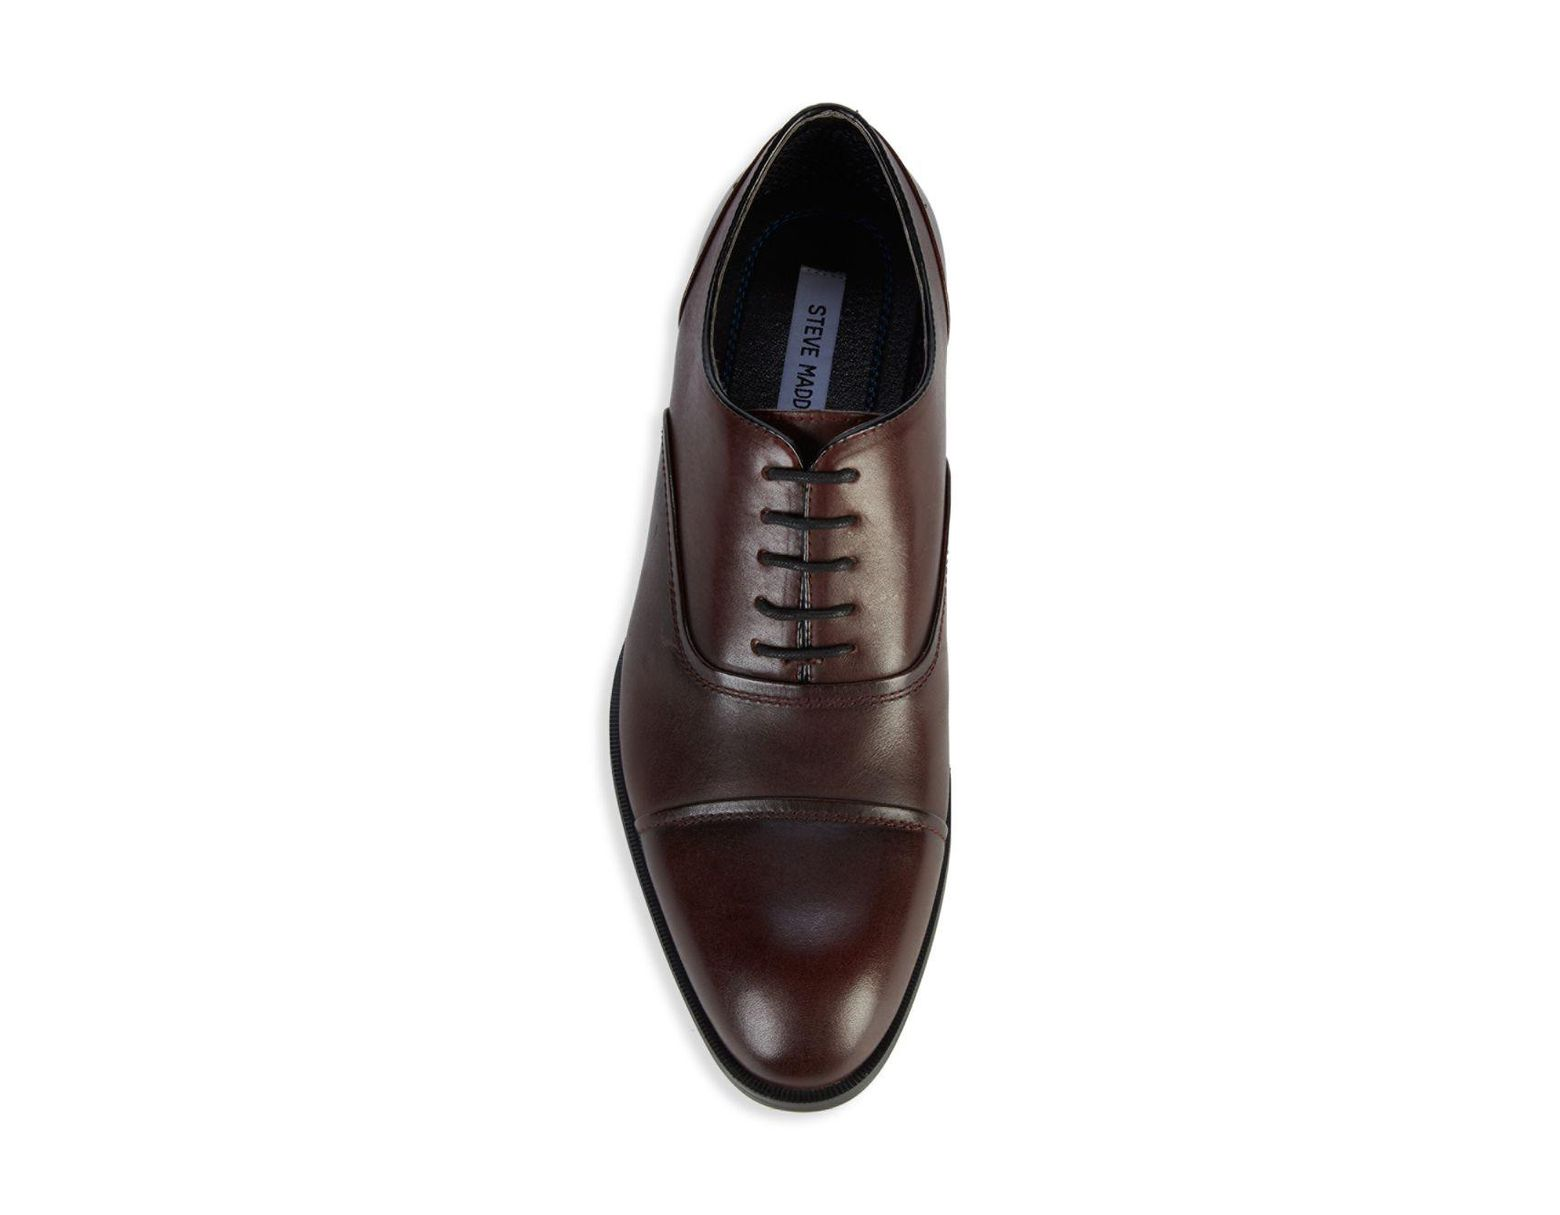 d2de6bba5e5 Steve Madden Elwood Leather Oxfords in Brown for Men - Lyst